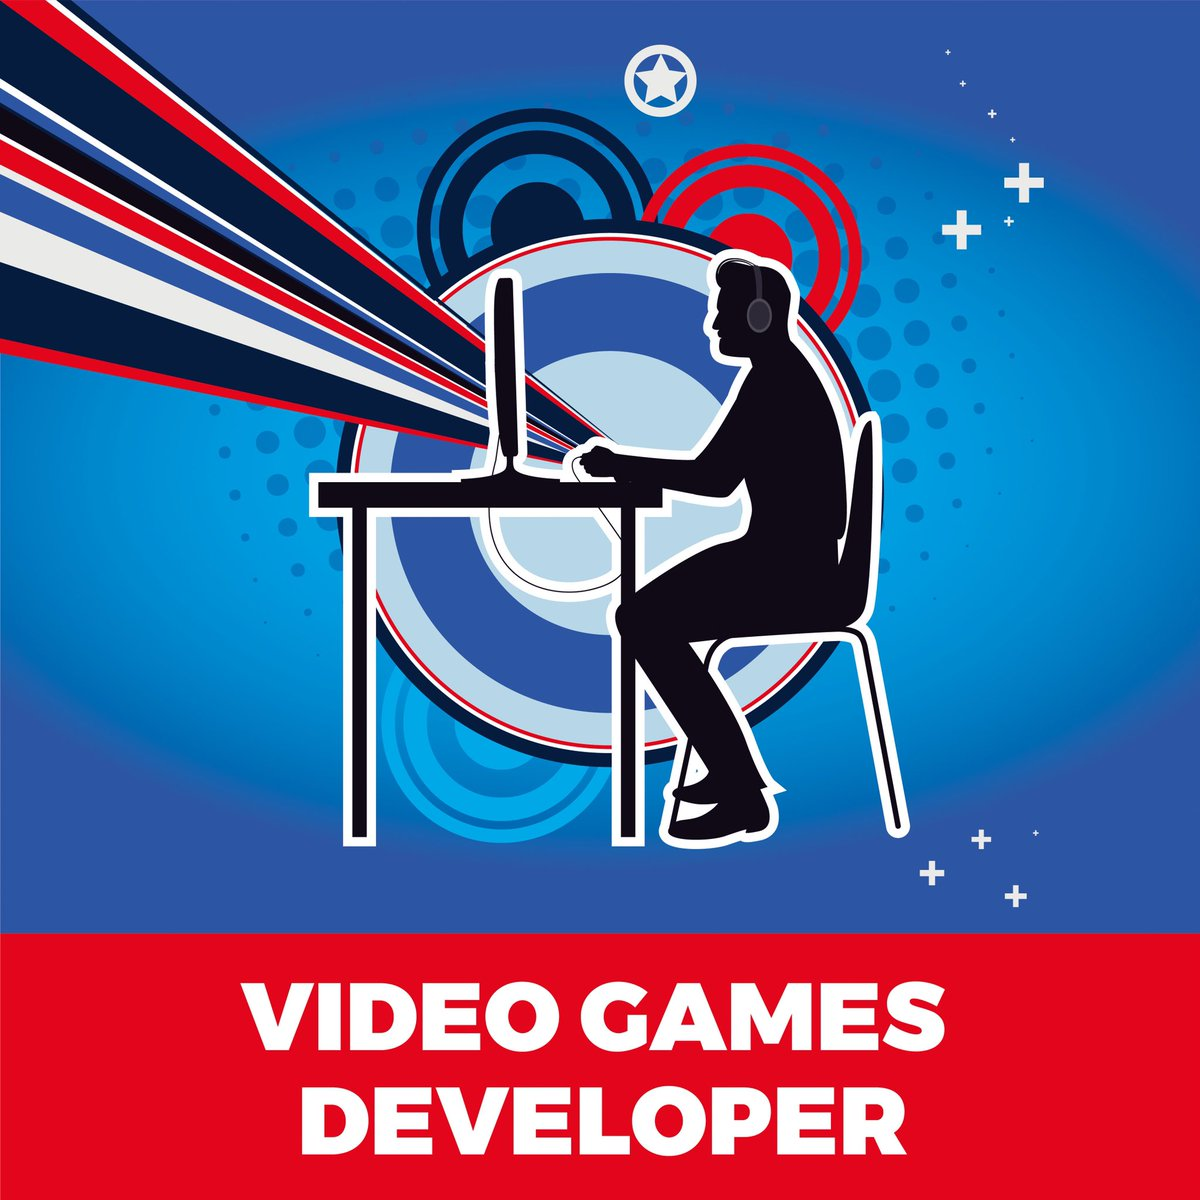 Uowd On Twitter Will You Be The Next Video Game Designer That Creates An Immersive Virtual World Explore A Career Path In Video Game Development And Get Futureready With Uowd,Creative Graphic Design Creative A Logo Images